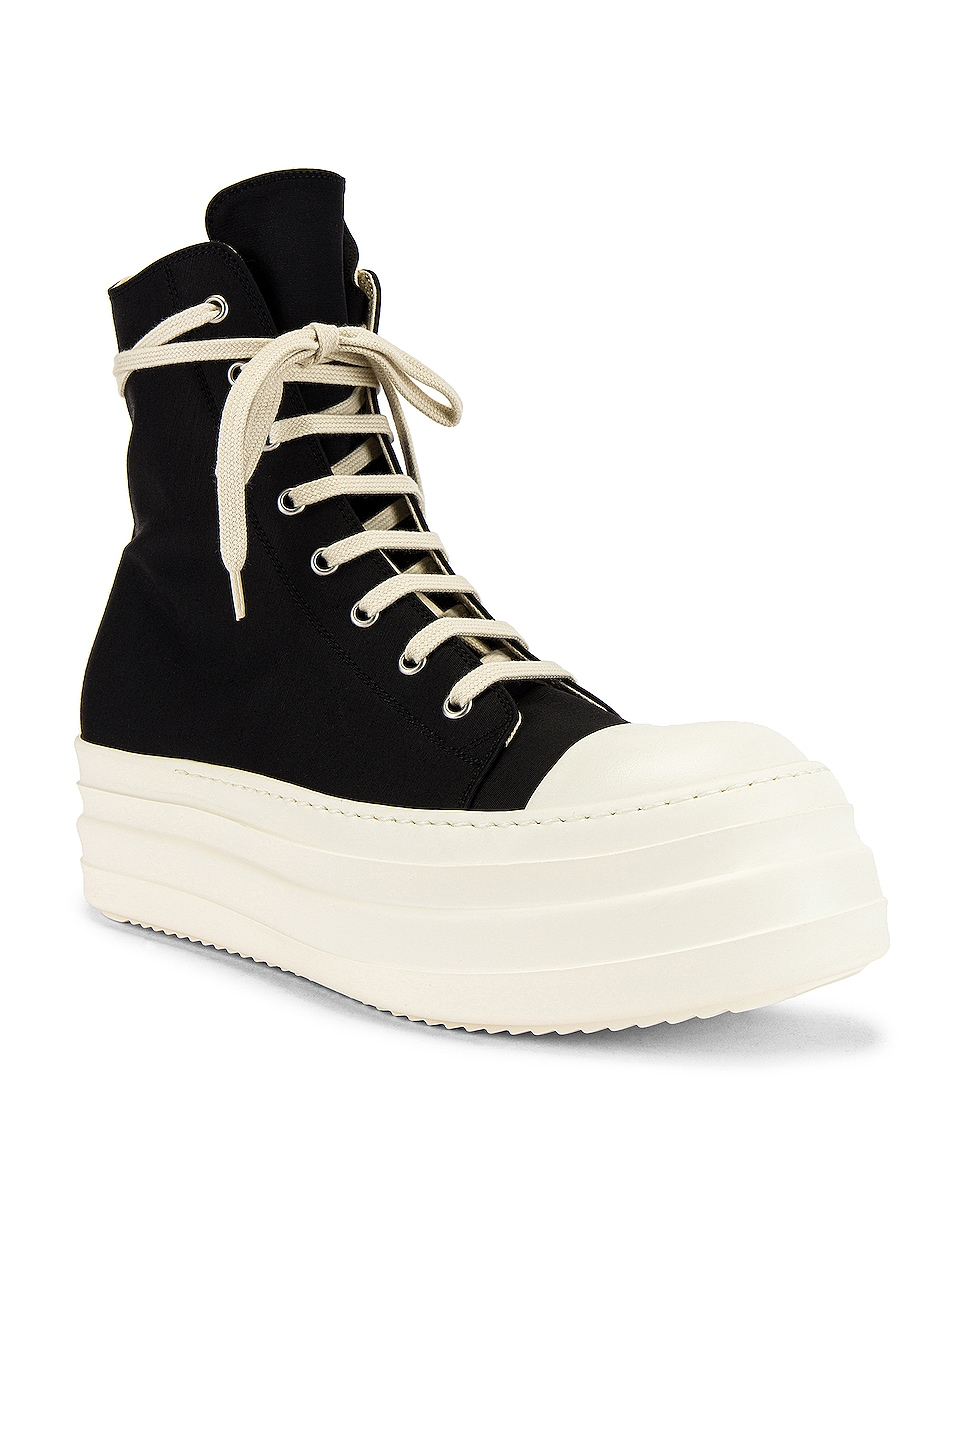 DRKSHDW by Rick Owens Double Bumper Beetle Sneakers in Black